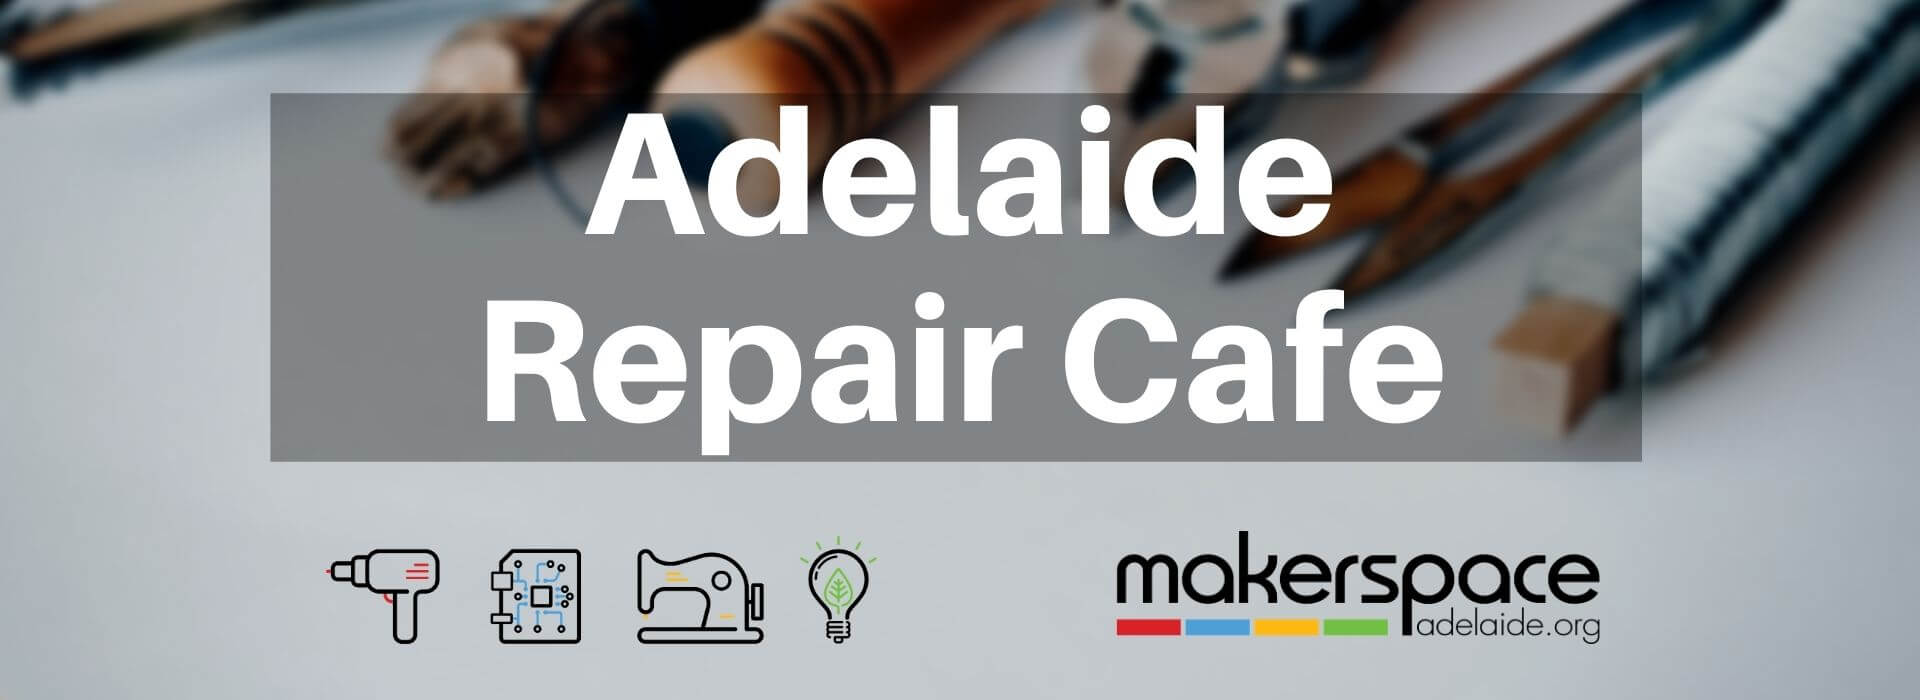 Adelaide Repair Cafe